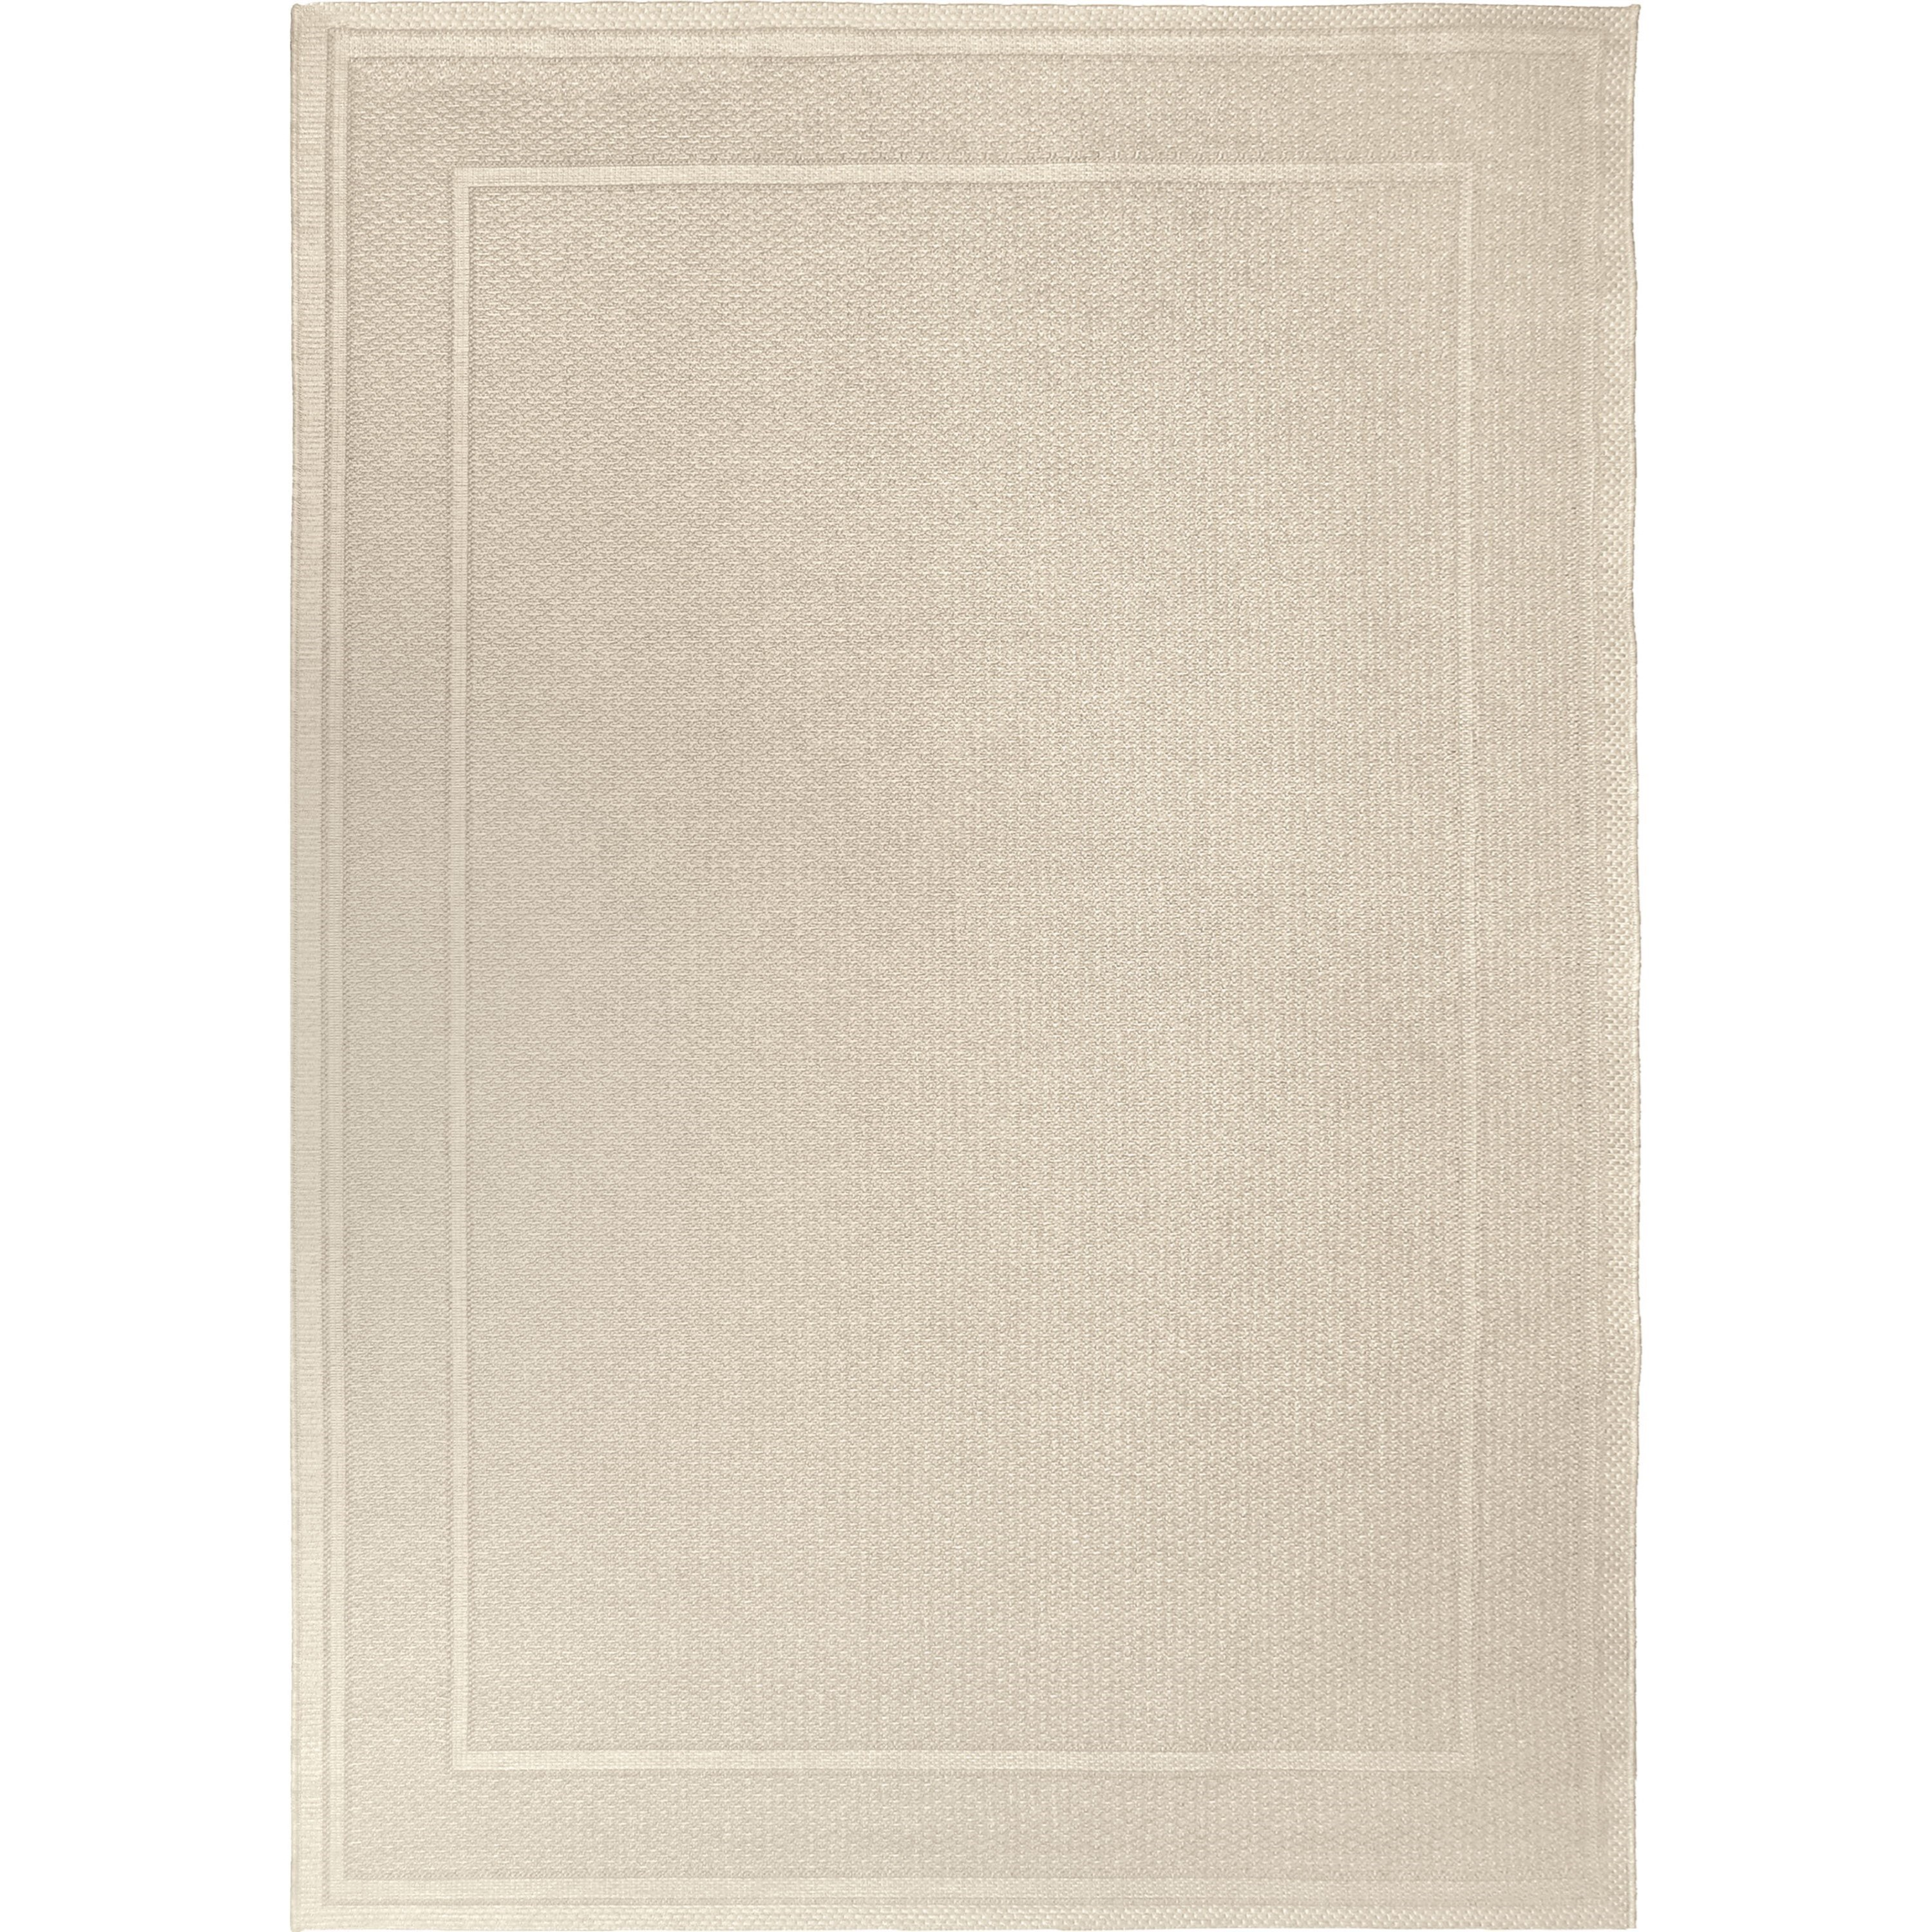 """Jersey Home Bonita ivory 5'1"""" x 7'6"""" Rug by Orian Rugs at Mueller Furniture"""